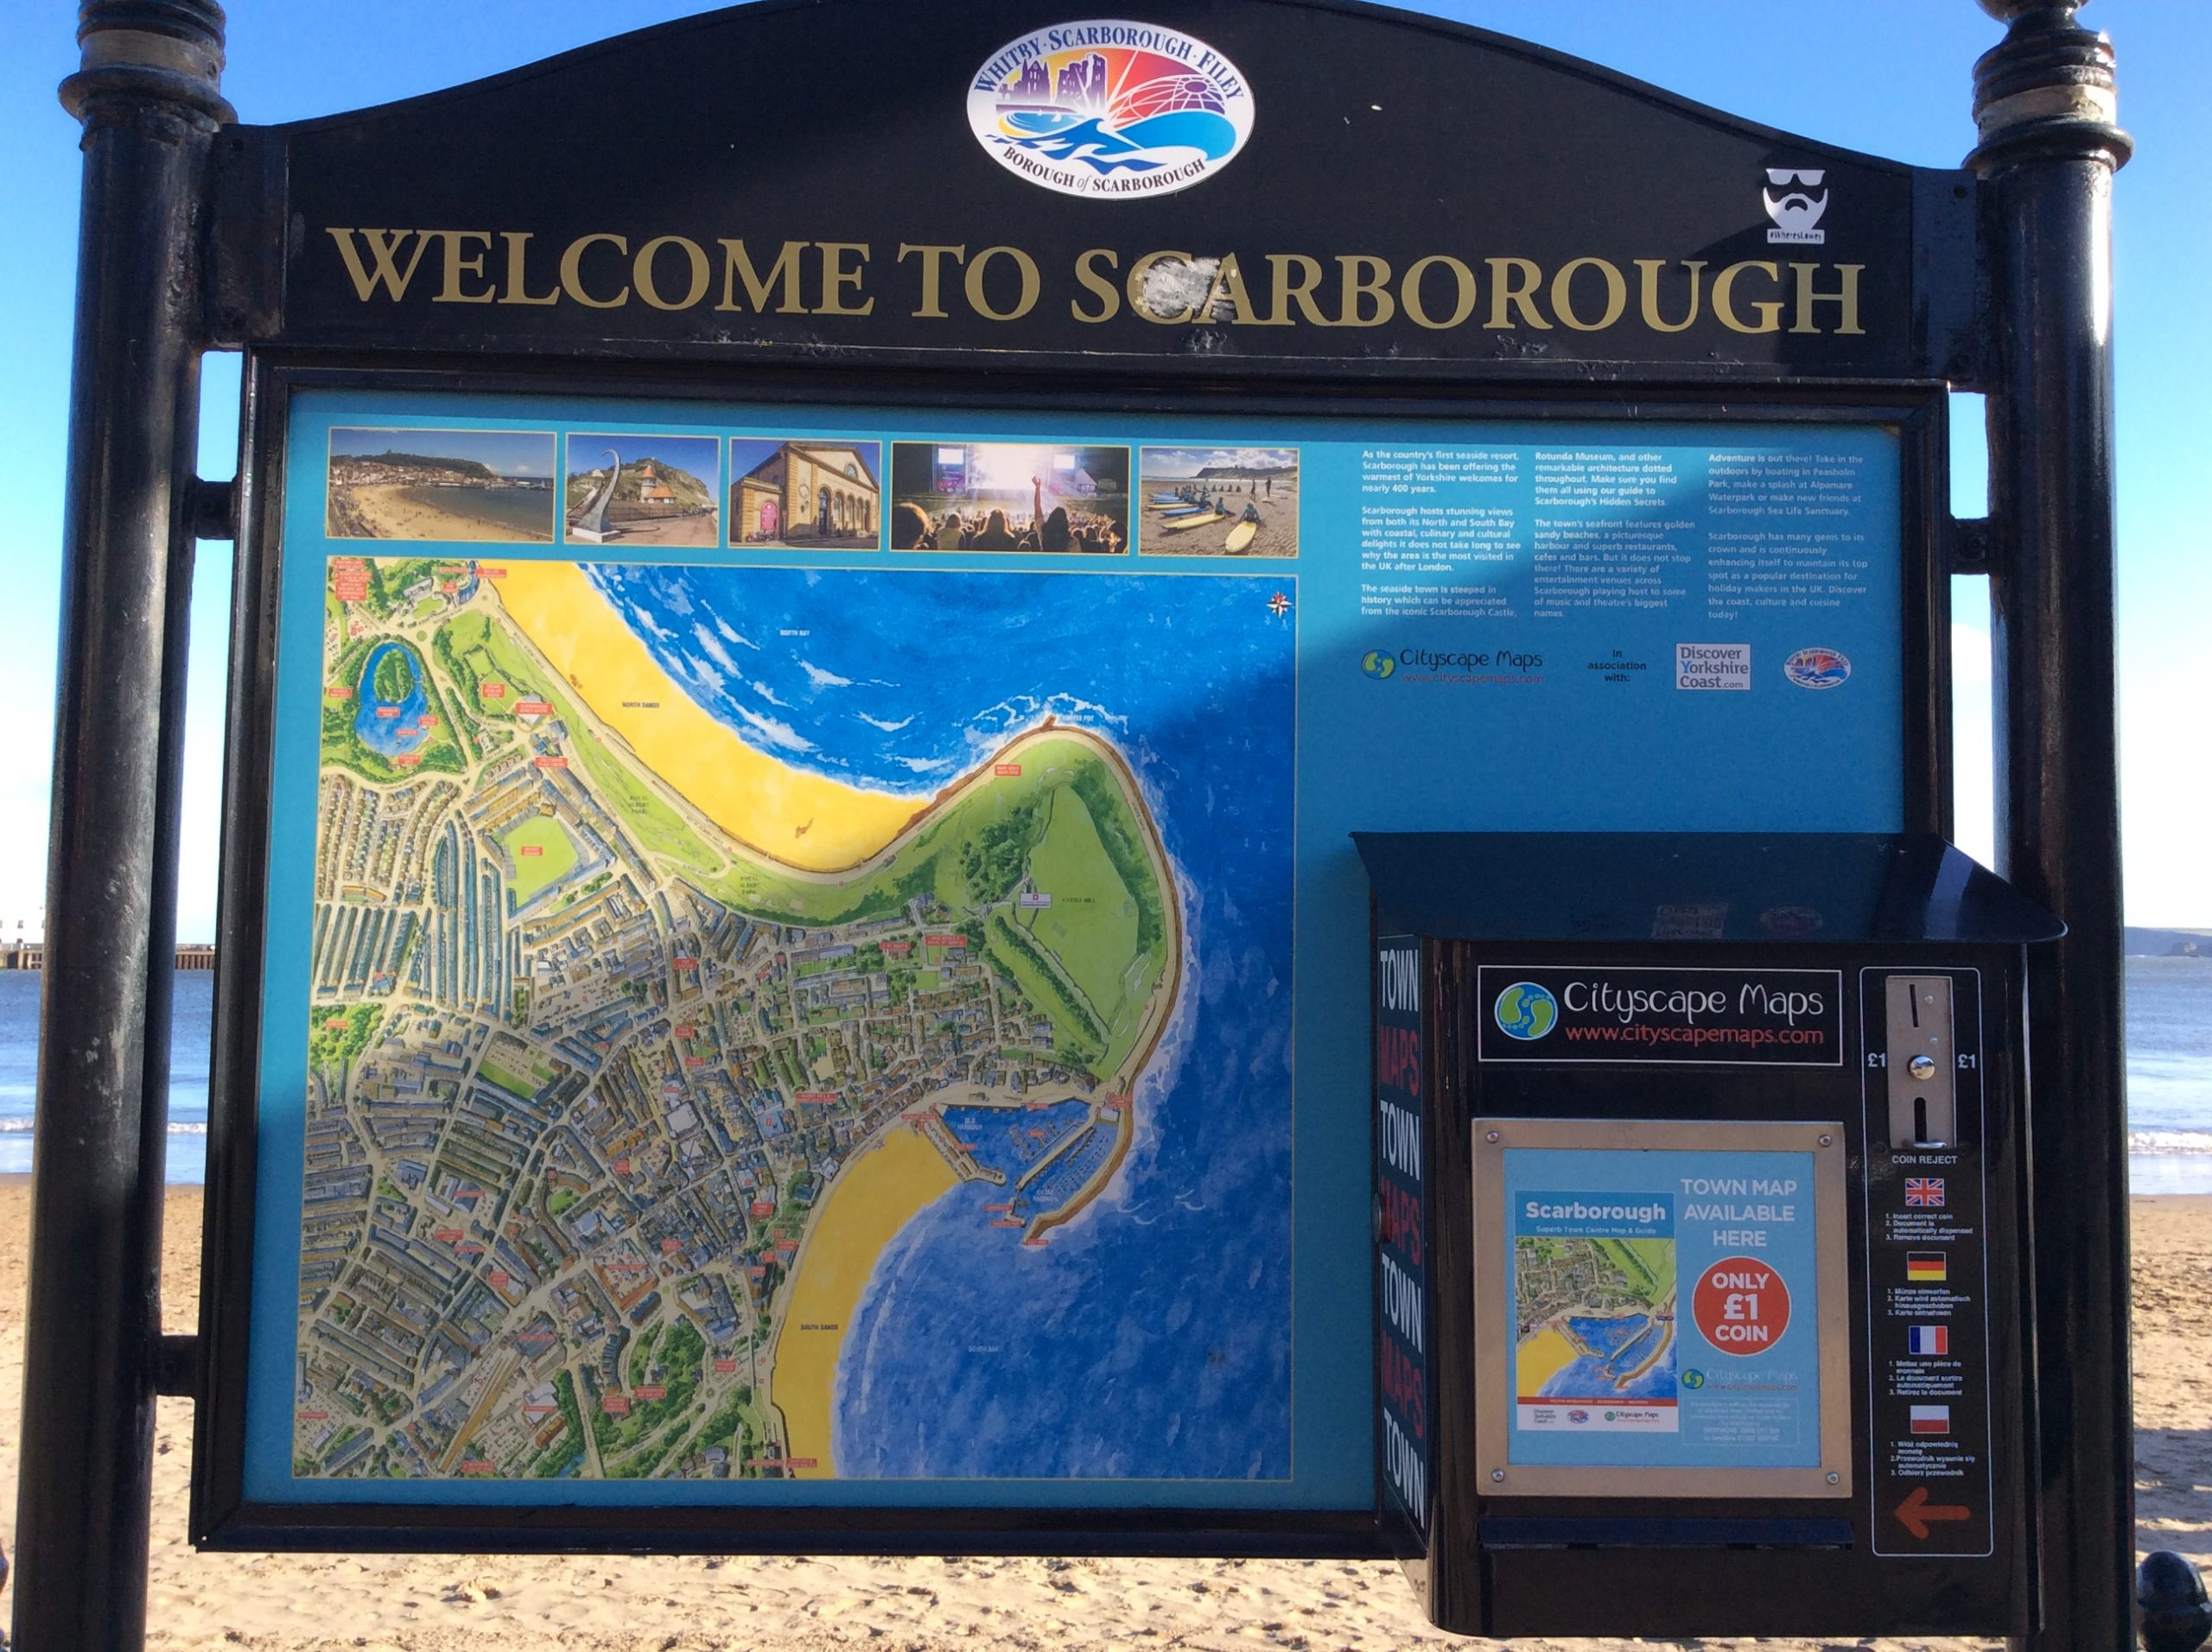 Image Description - Large Welcome to Scarborough sign, with a detailed map of the area and a map vending box attached to the side.⠀⠀